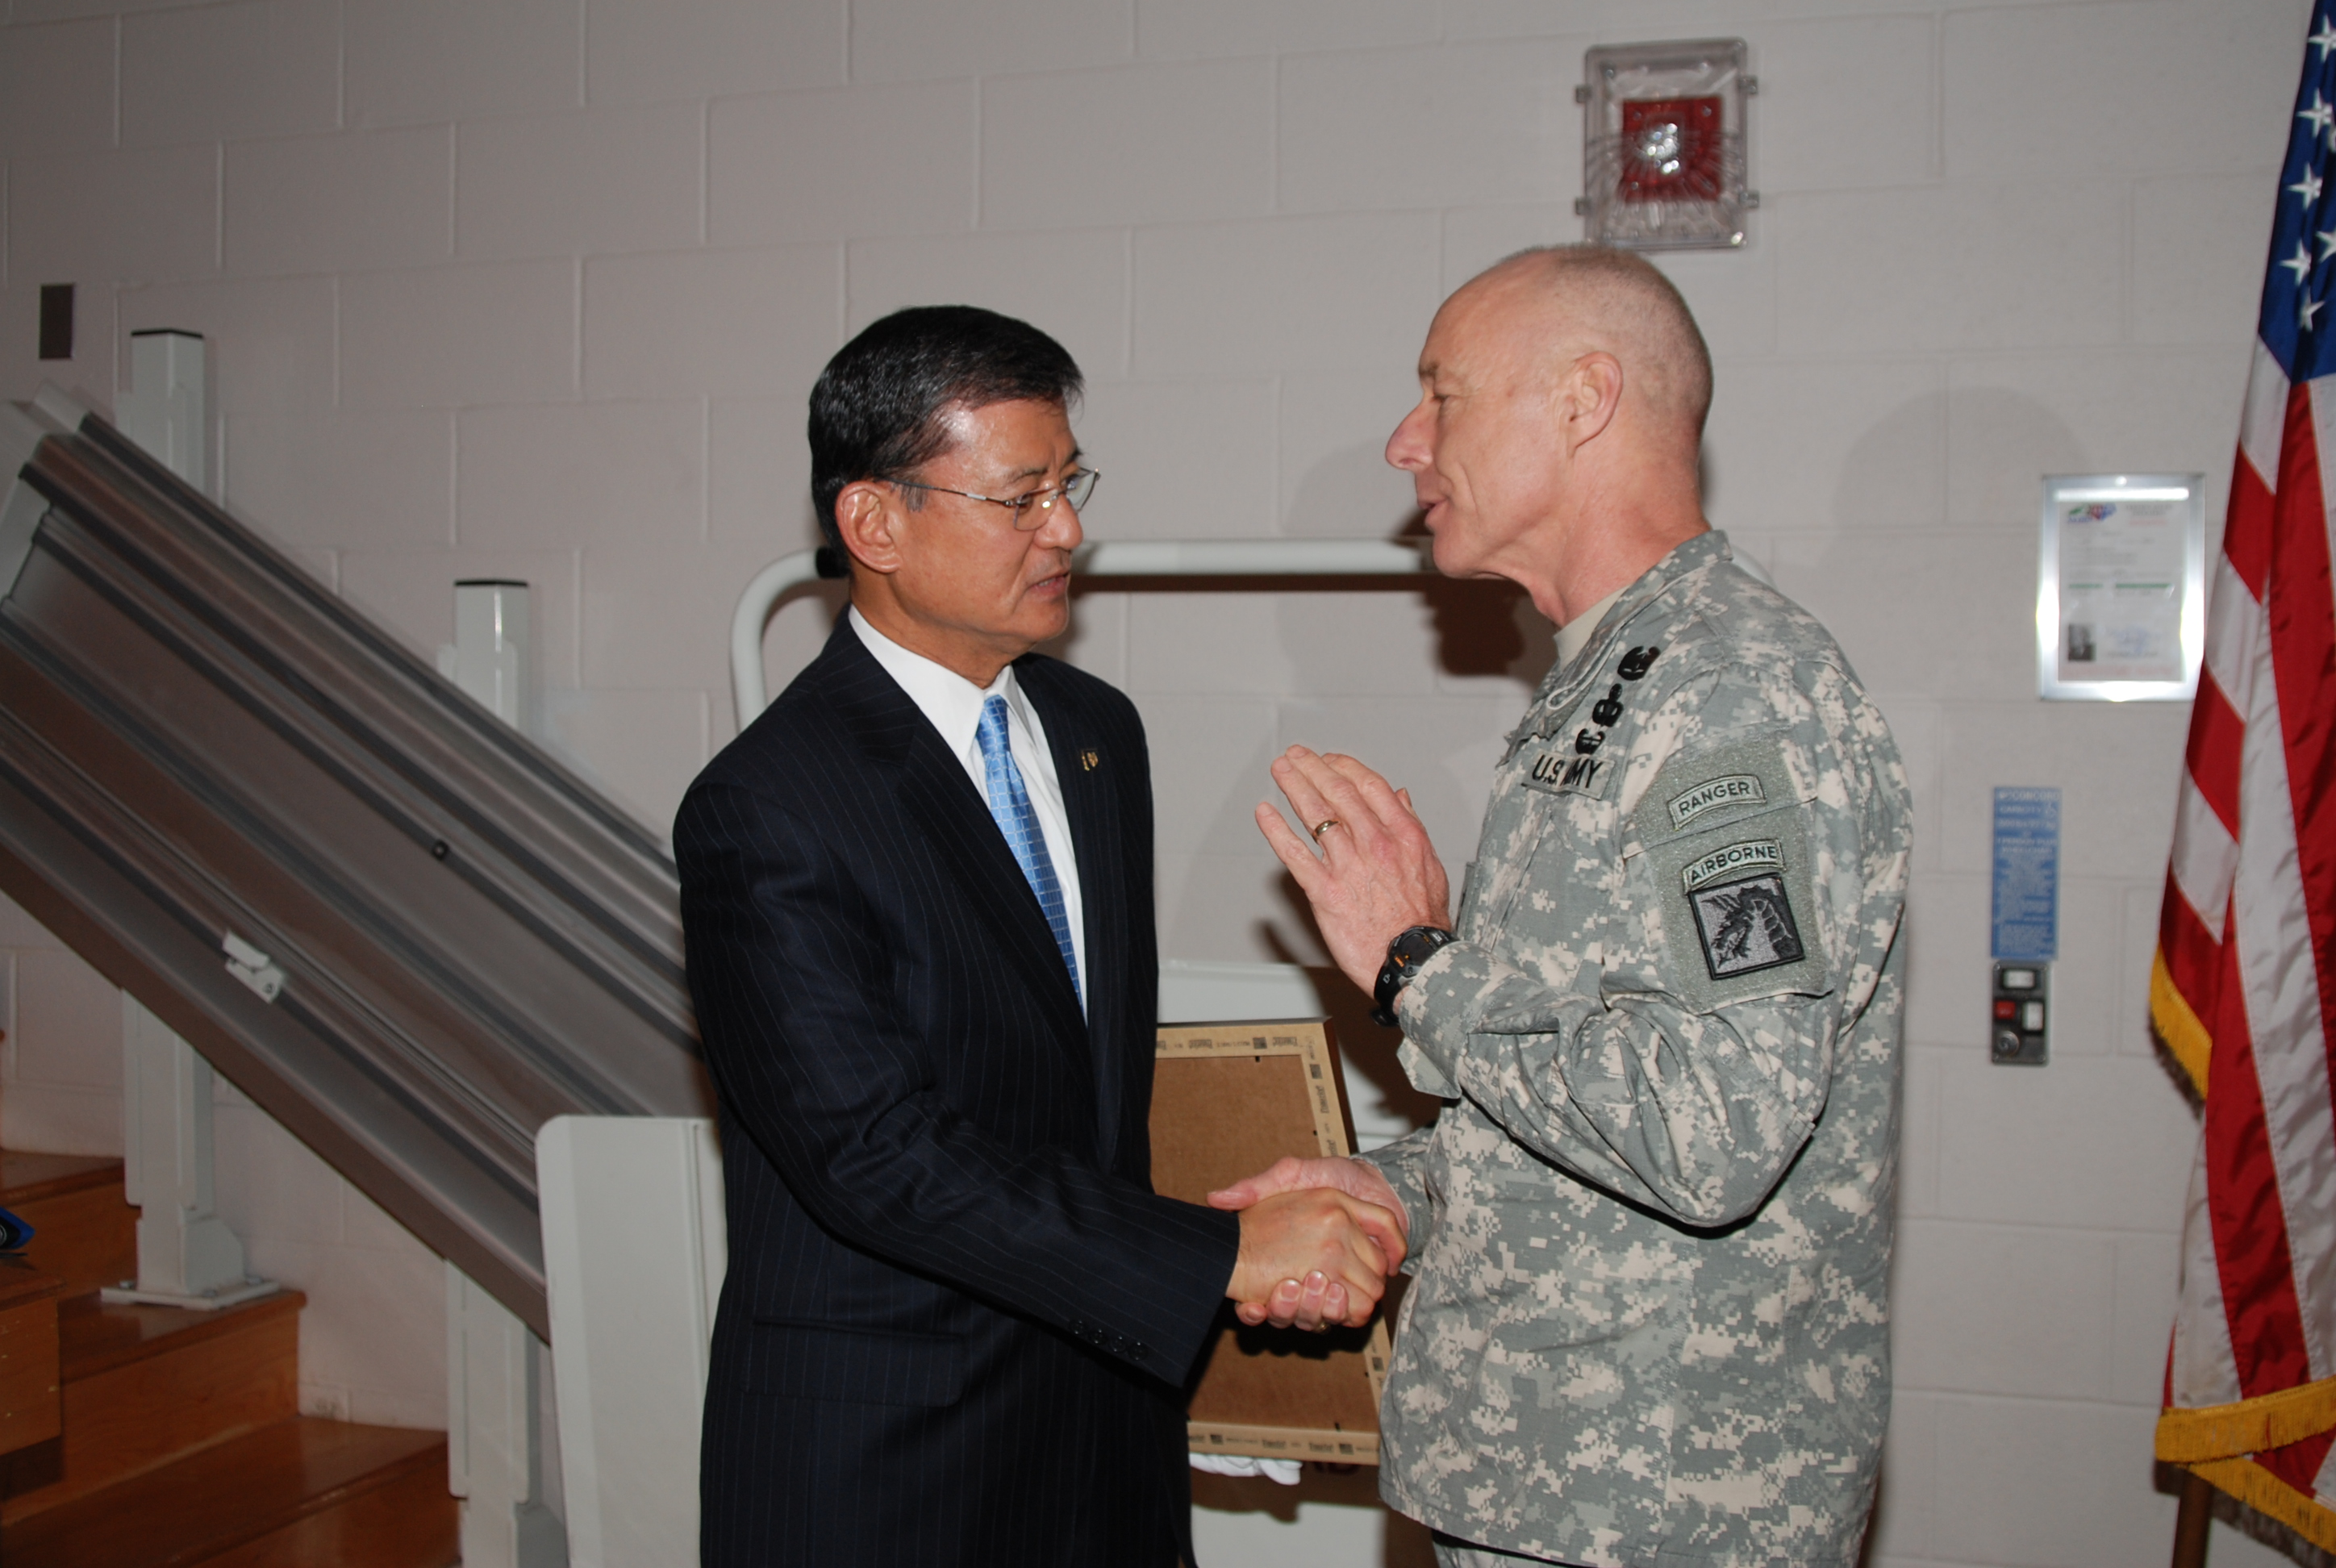 Secretary Shinseki Fatherhood General